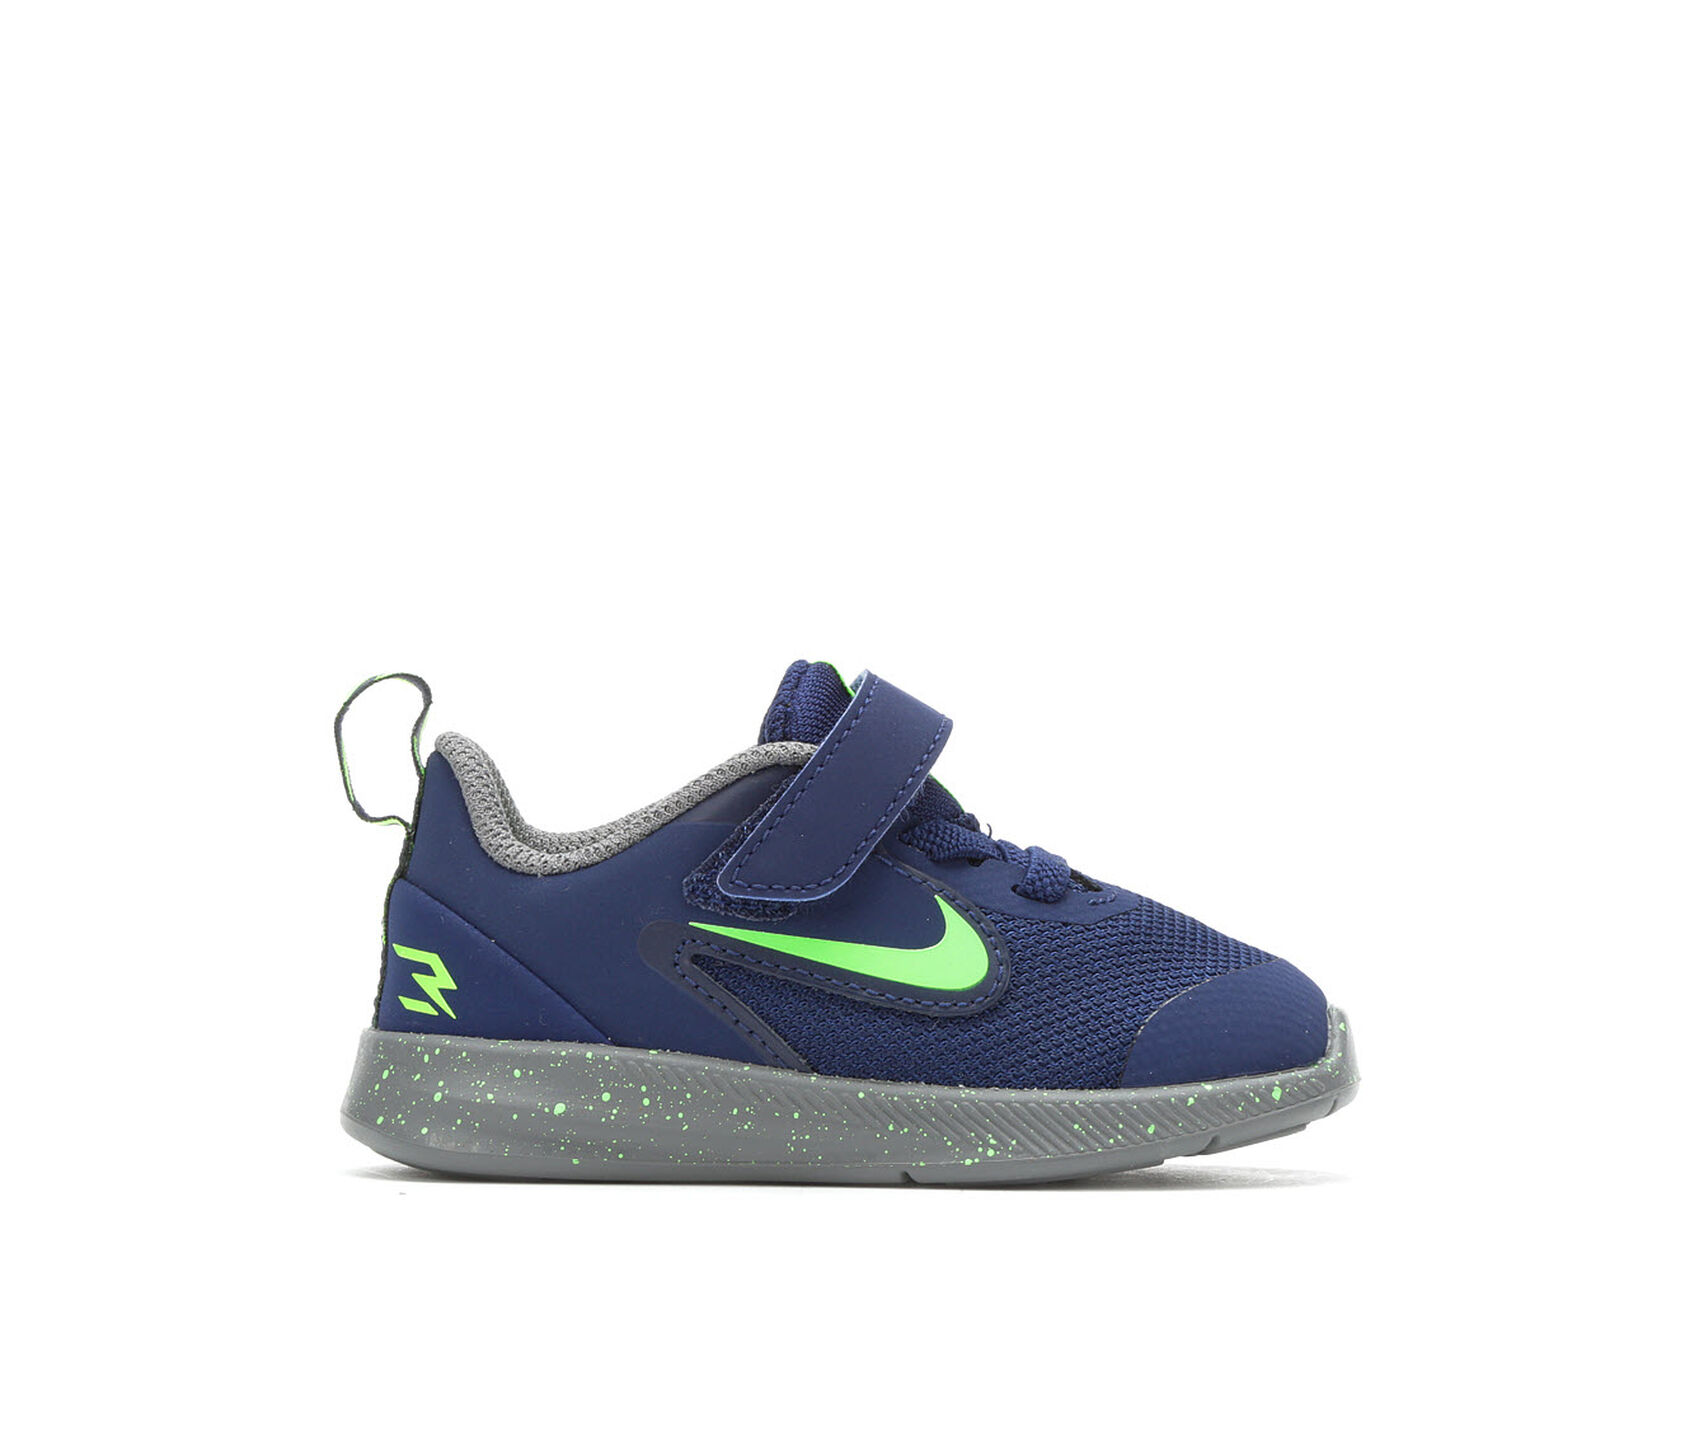 online store 9e632 05b85 Boys' Nike Infant & Toddler Downshifter 9 Athletic Shoes